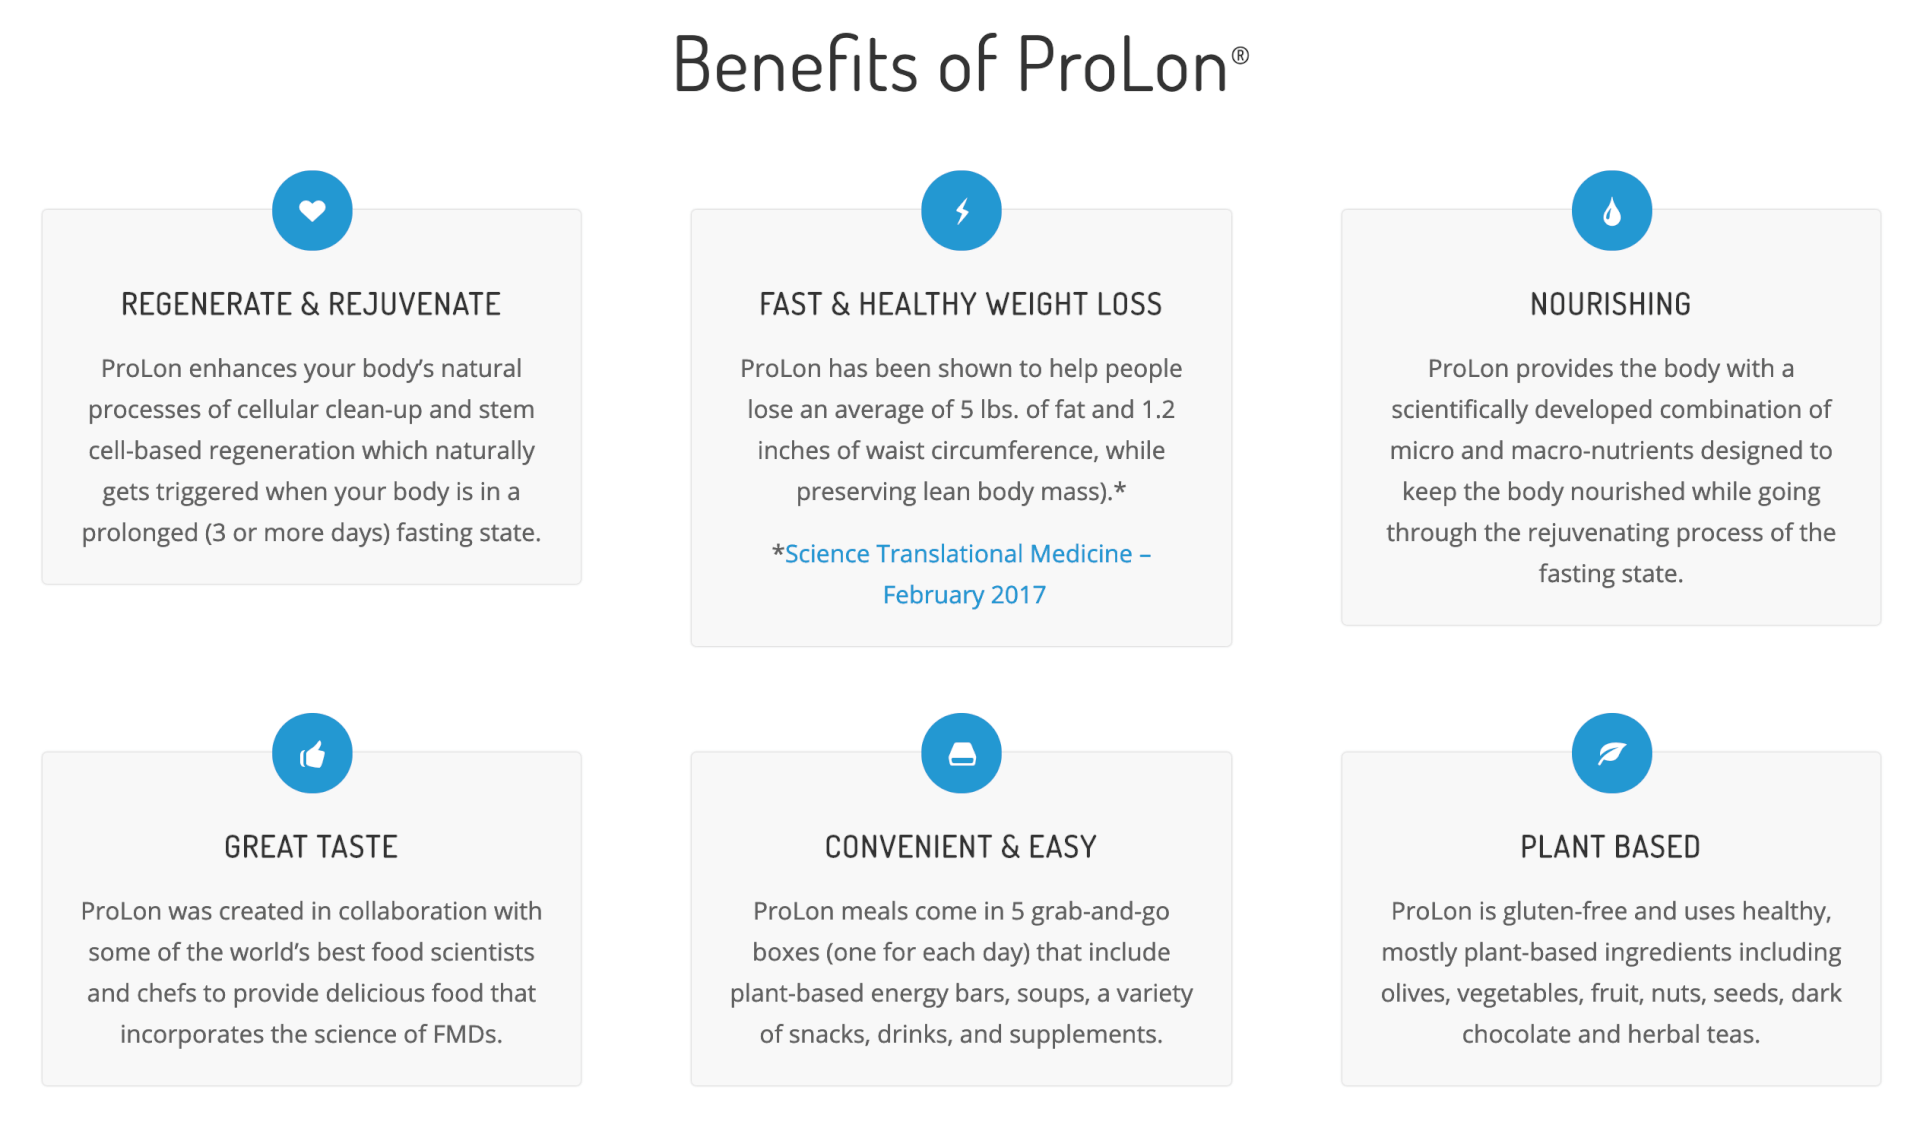 ProLon Benefits